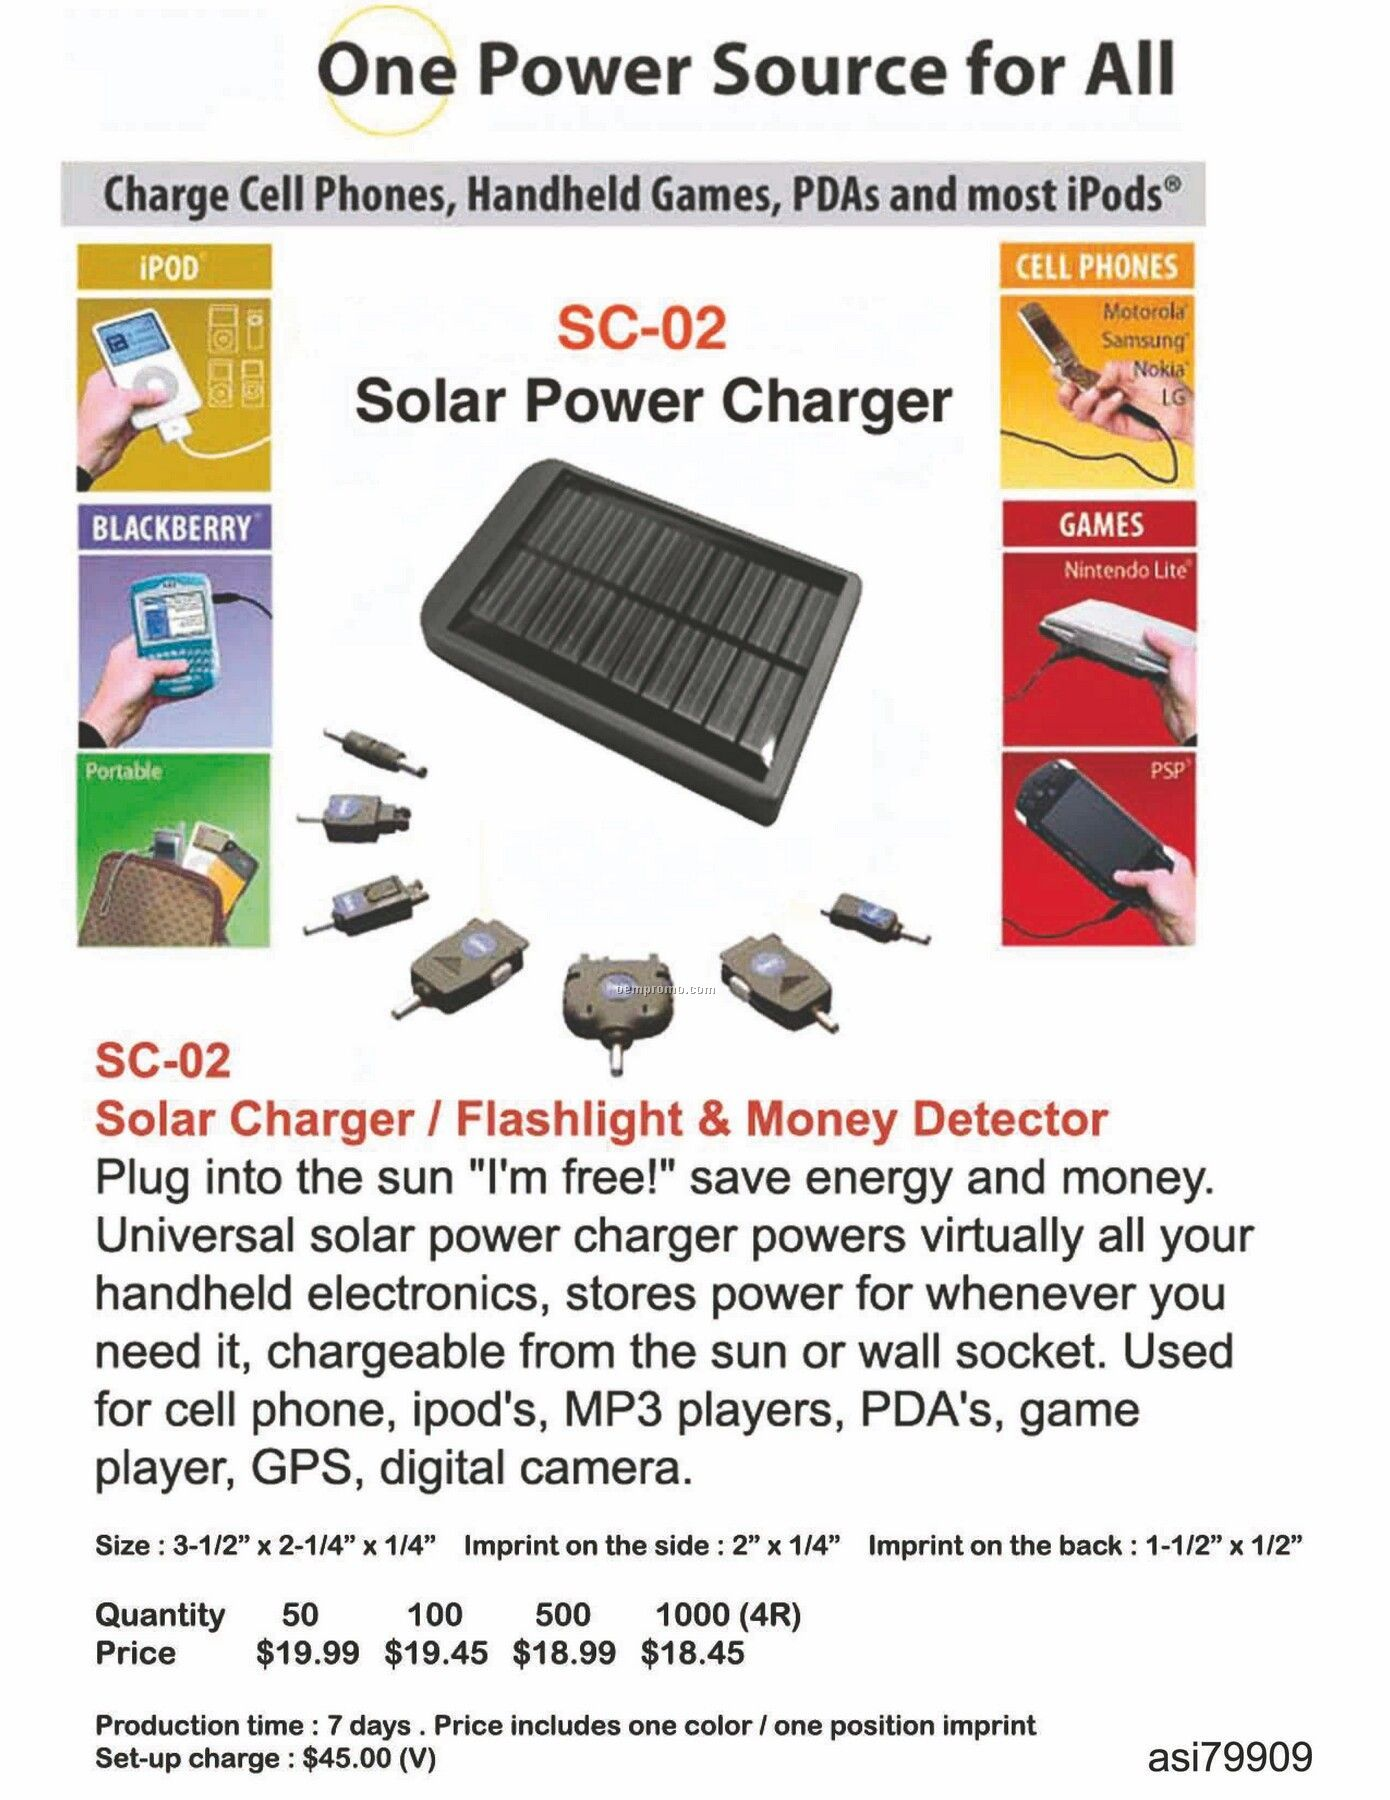 Solar Charger / Flashlight / Money Detector